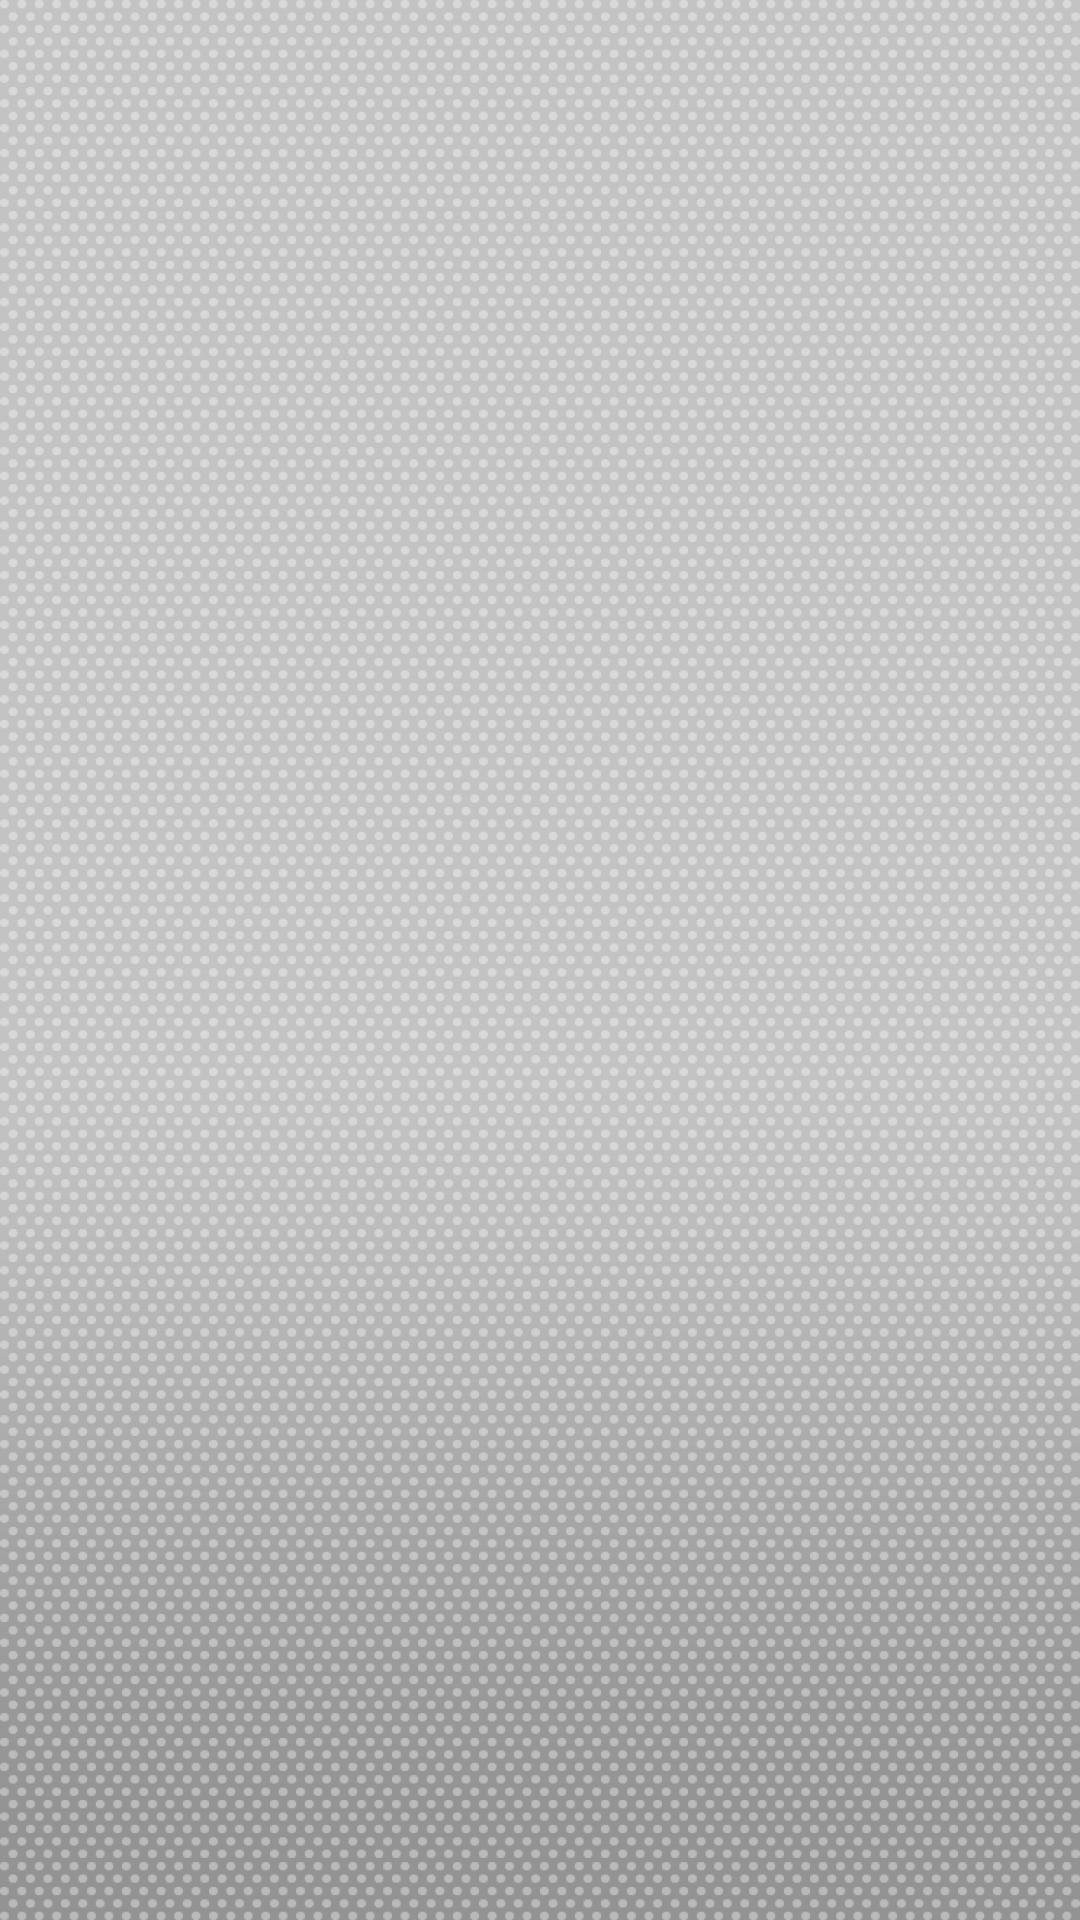 Gray iPhone hd wallpaper